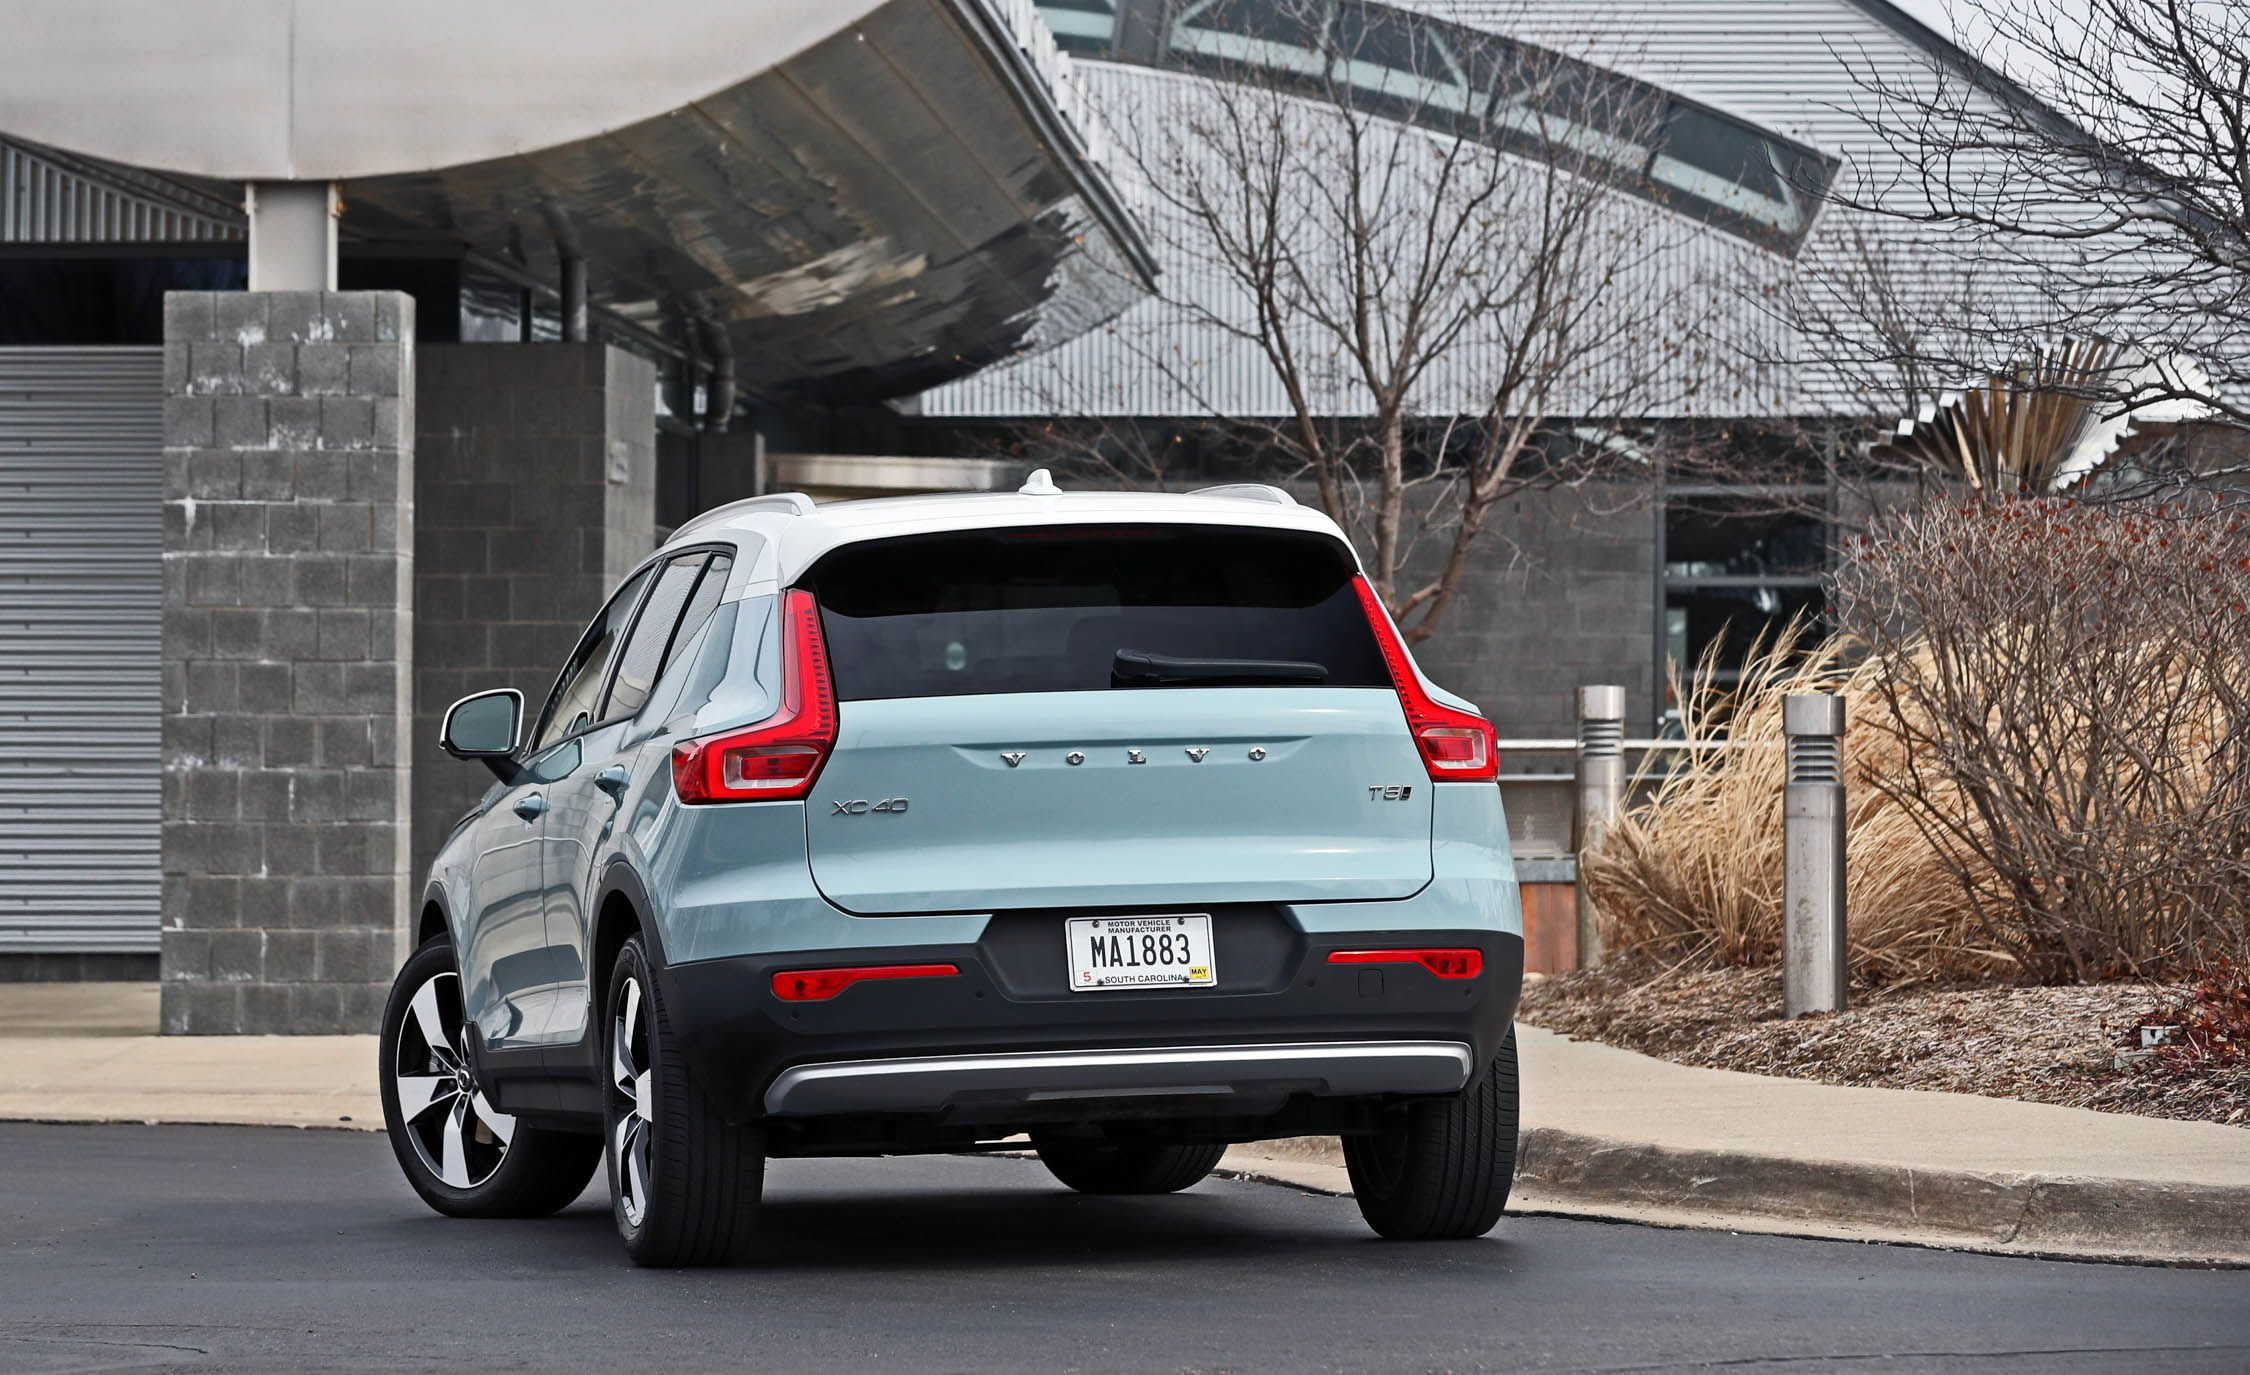 price style pictures new cars the for revealed uk life payment volvo in plan